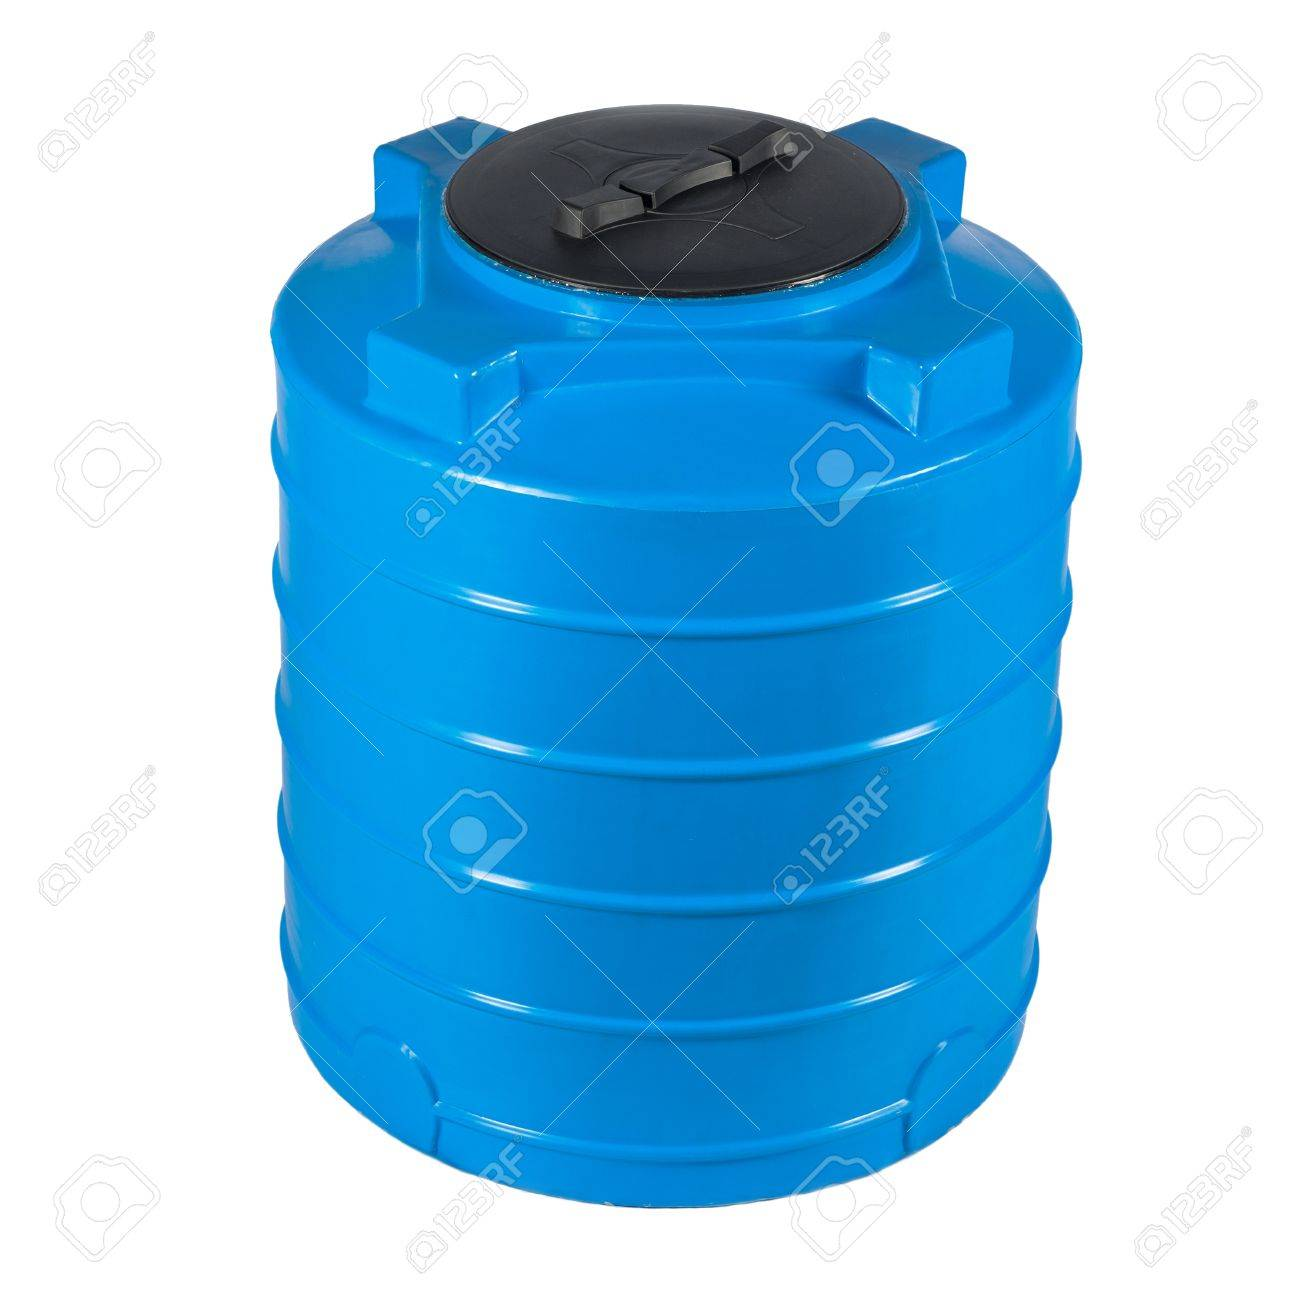 Big polyethylene container of 400 litres - 14793416